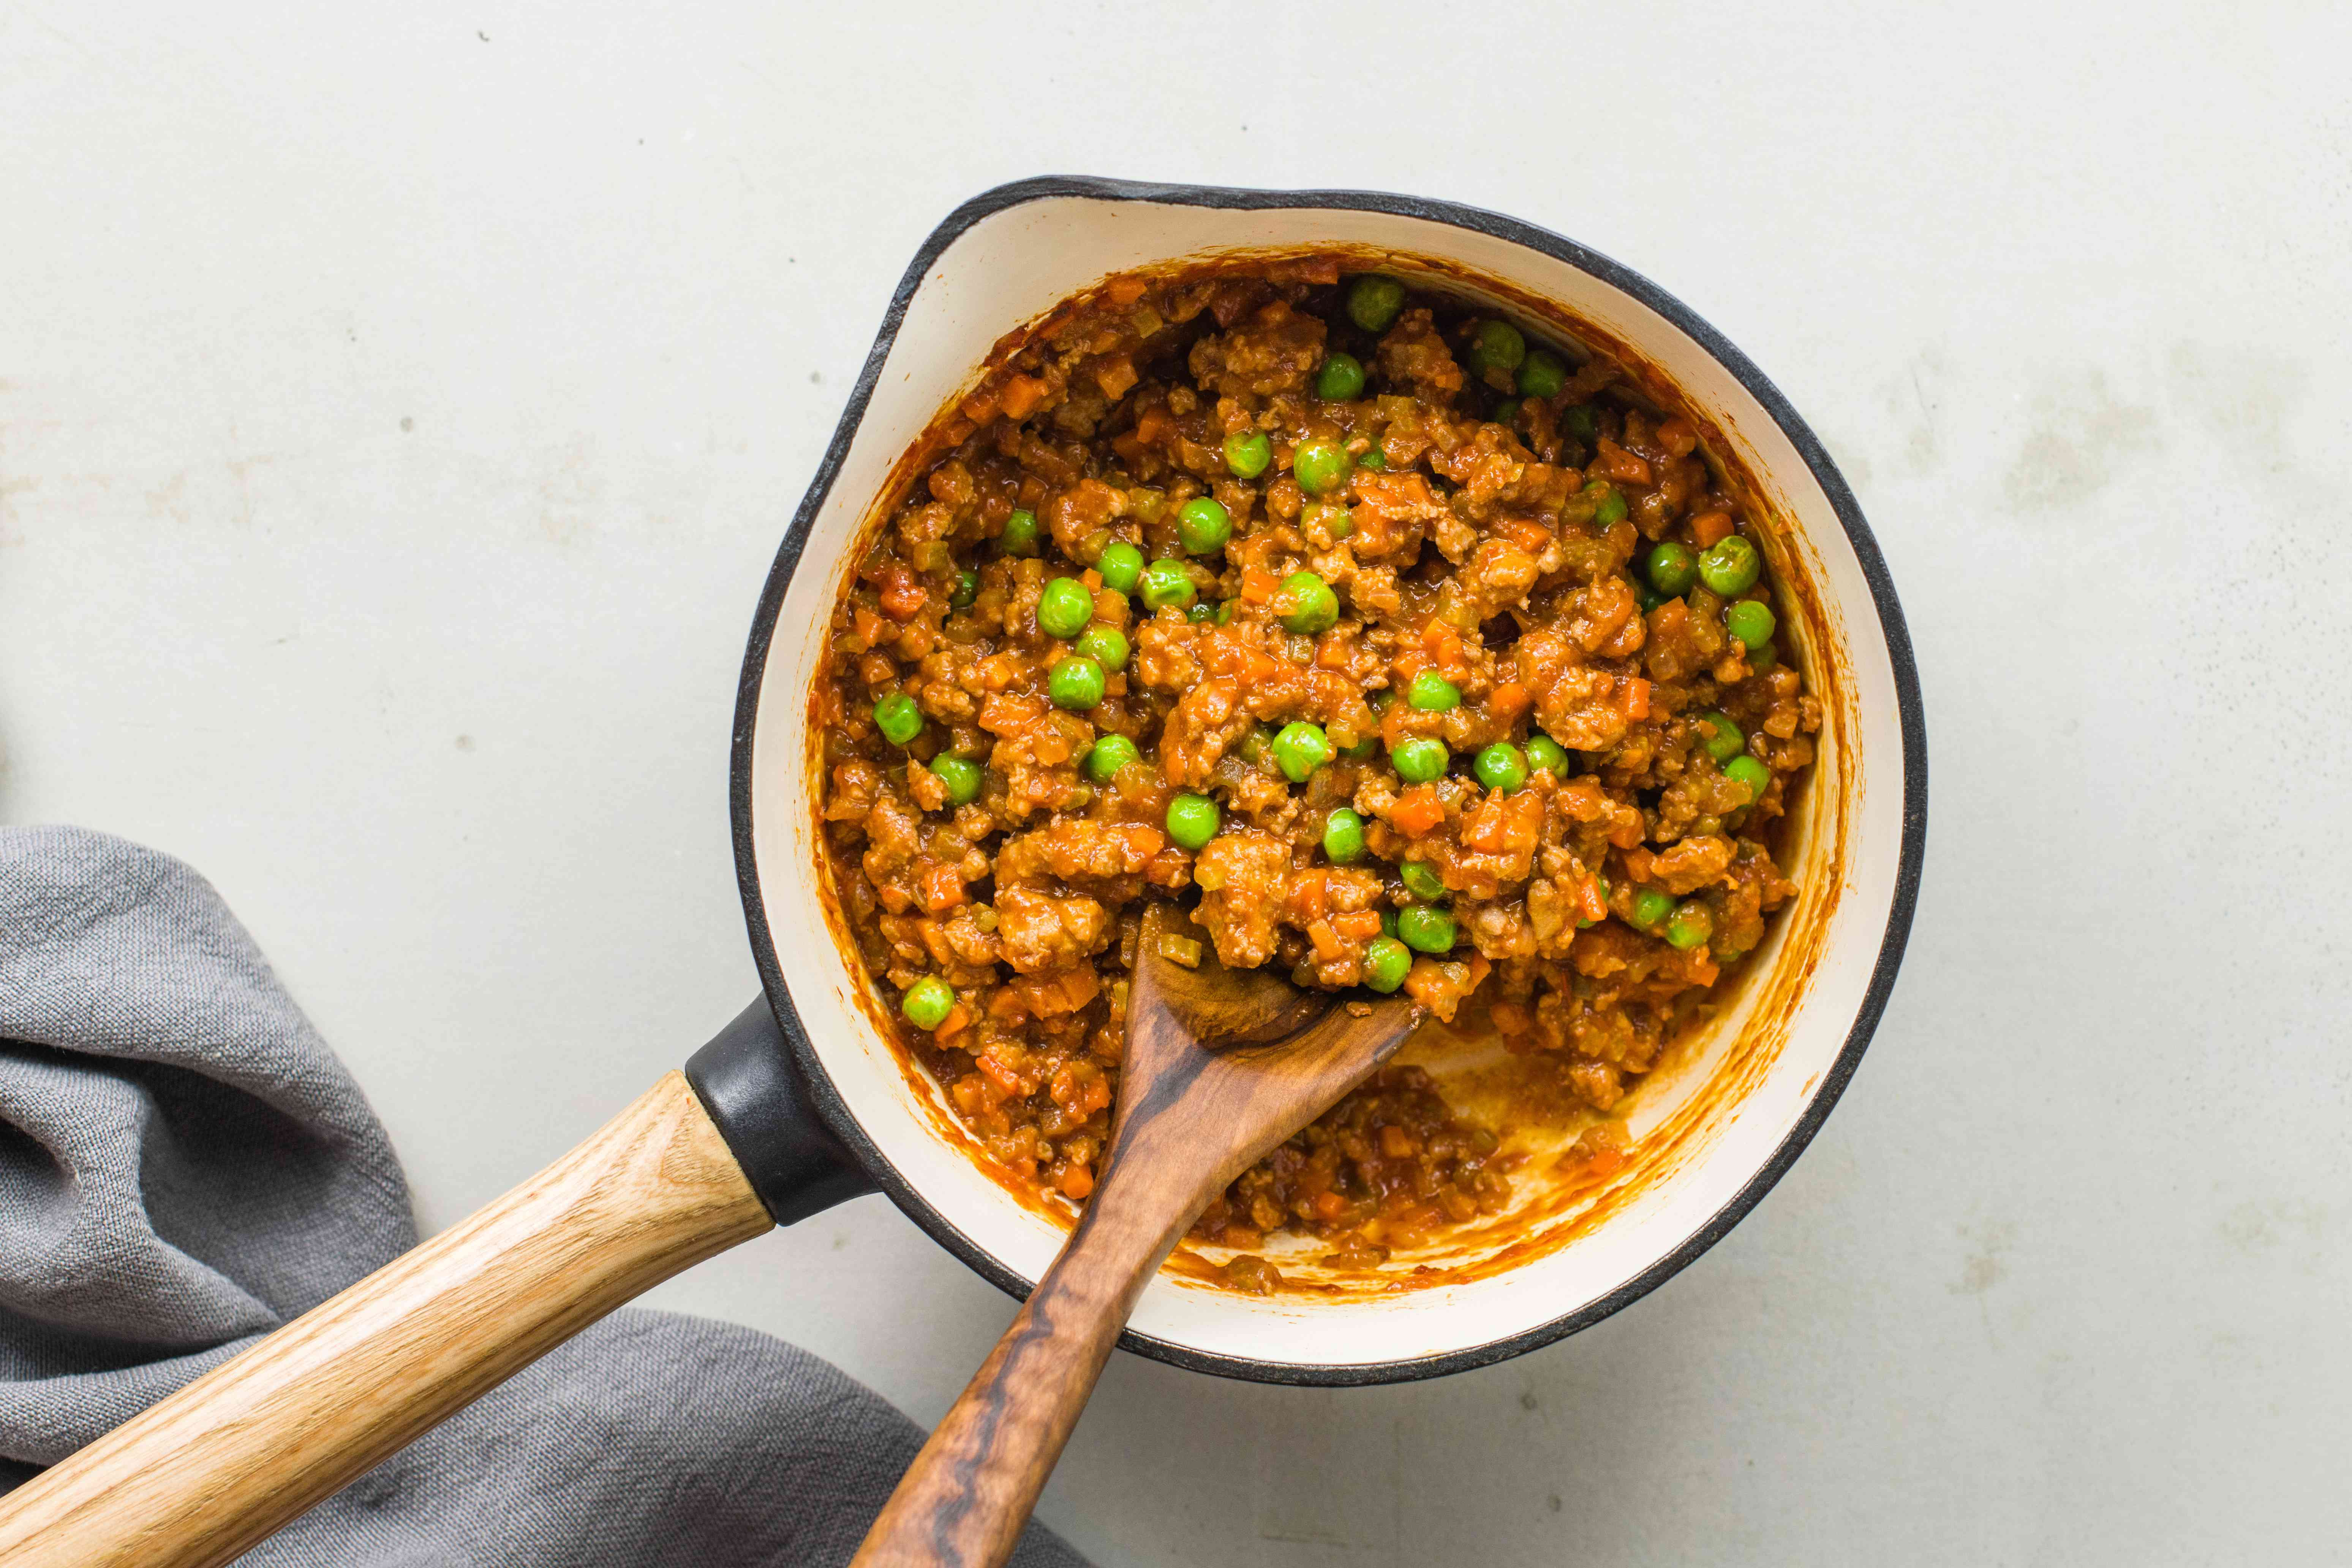 Add peas to the sauce